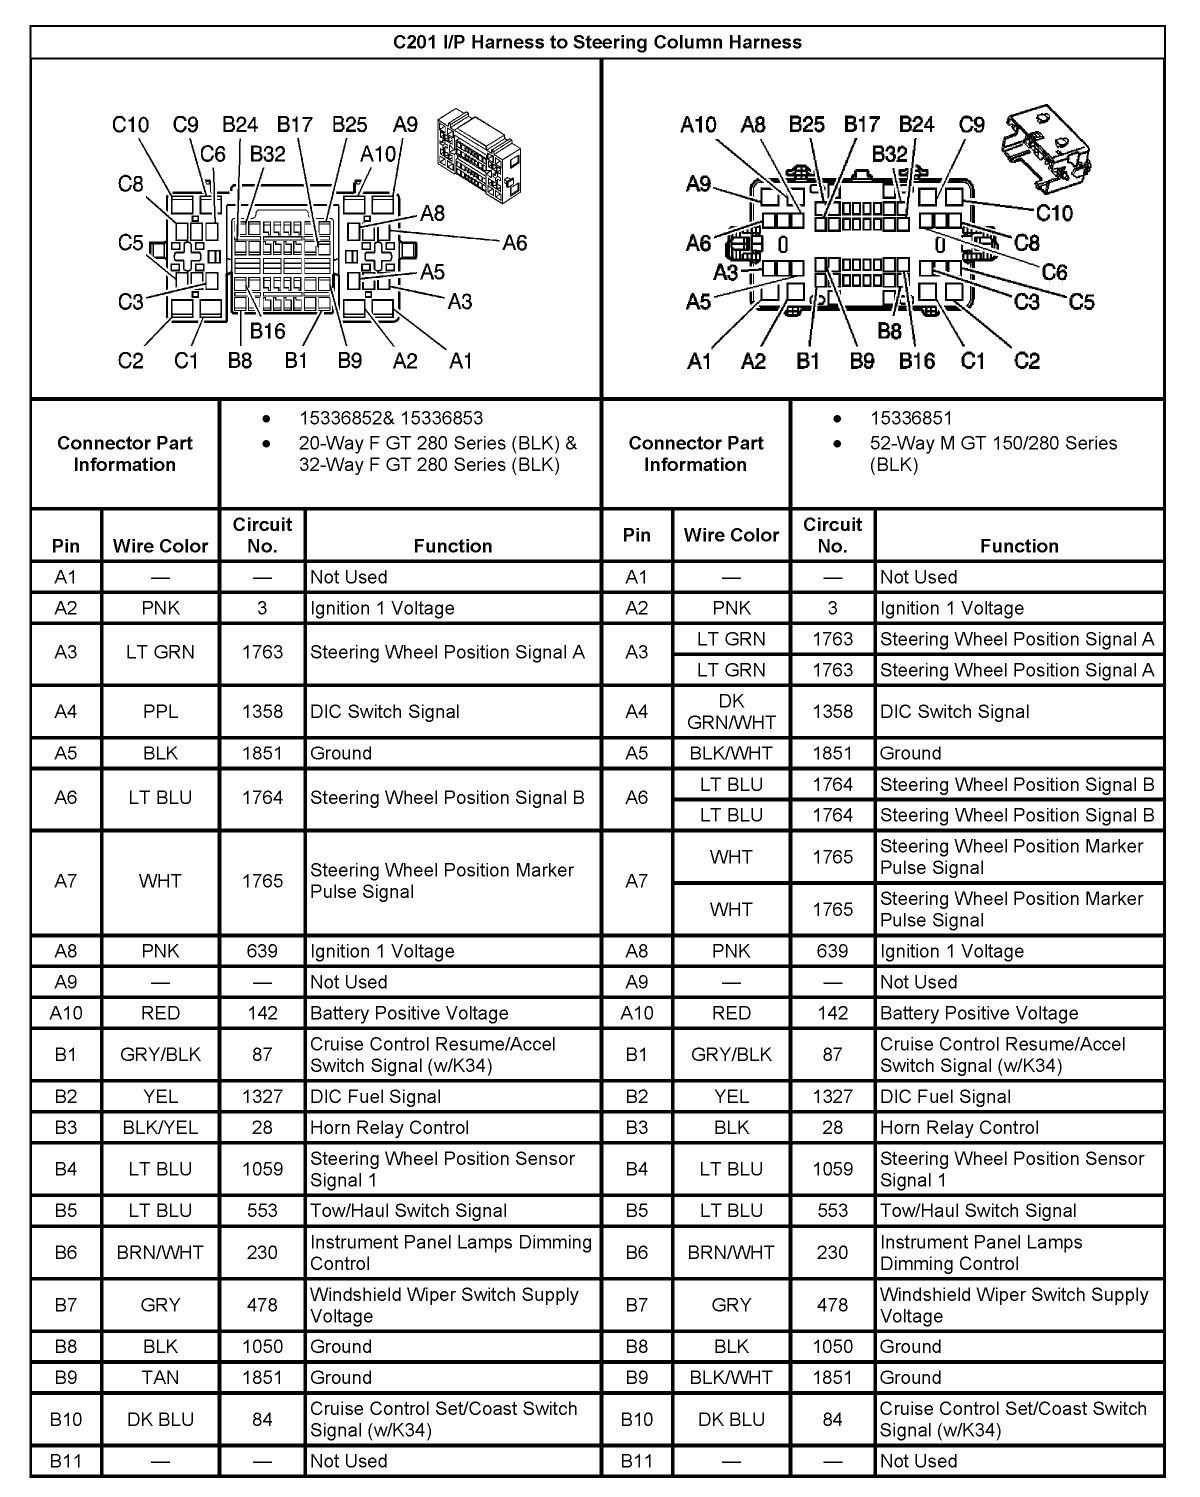 55 luxury 2004 gmc yukon bose radio wiring diagram in 2020 | gmc yukon,  truck stereo, chevy silverado  pinterest